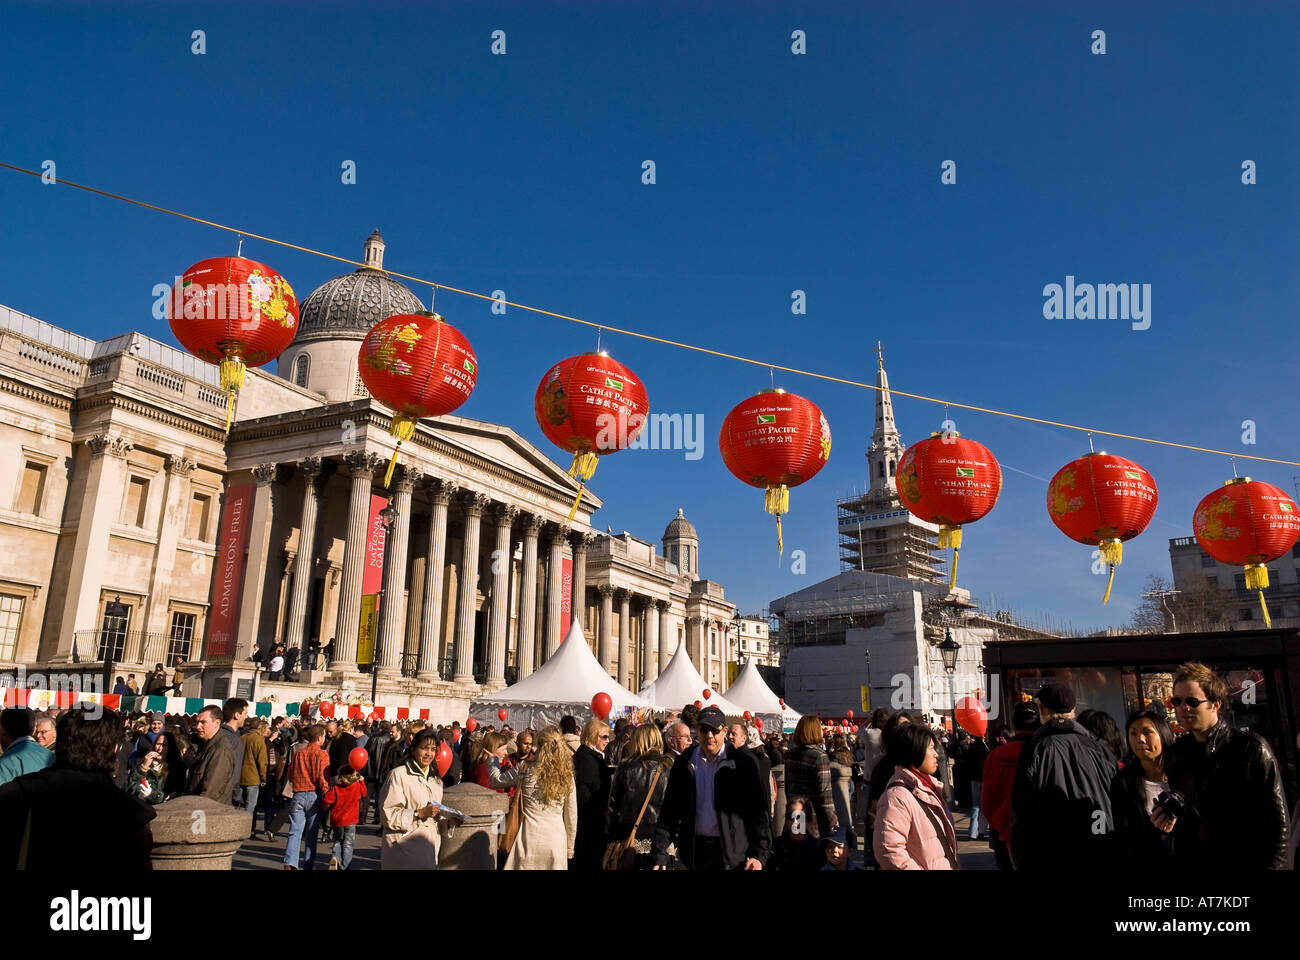 Chinese New Year celebrations in Trafalgar Square, London, 2008 - Year of the Rat. - Stock Image